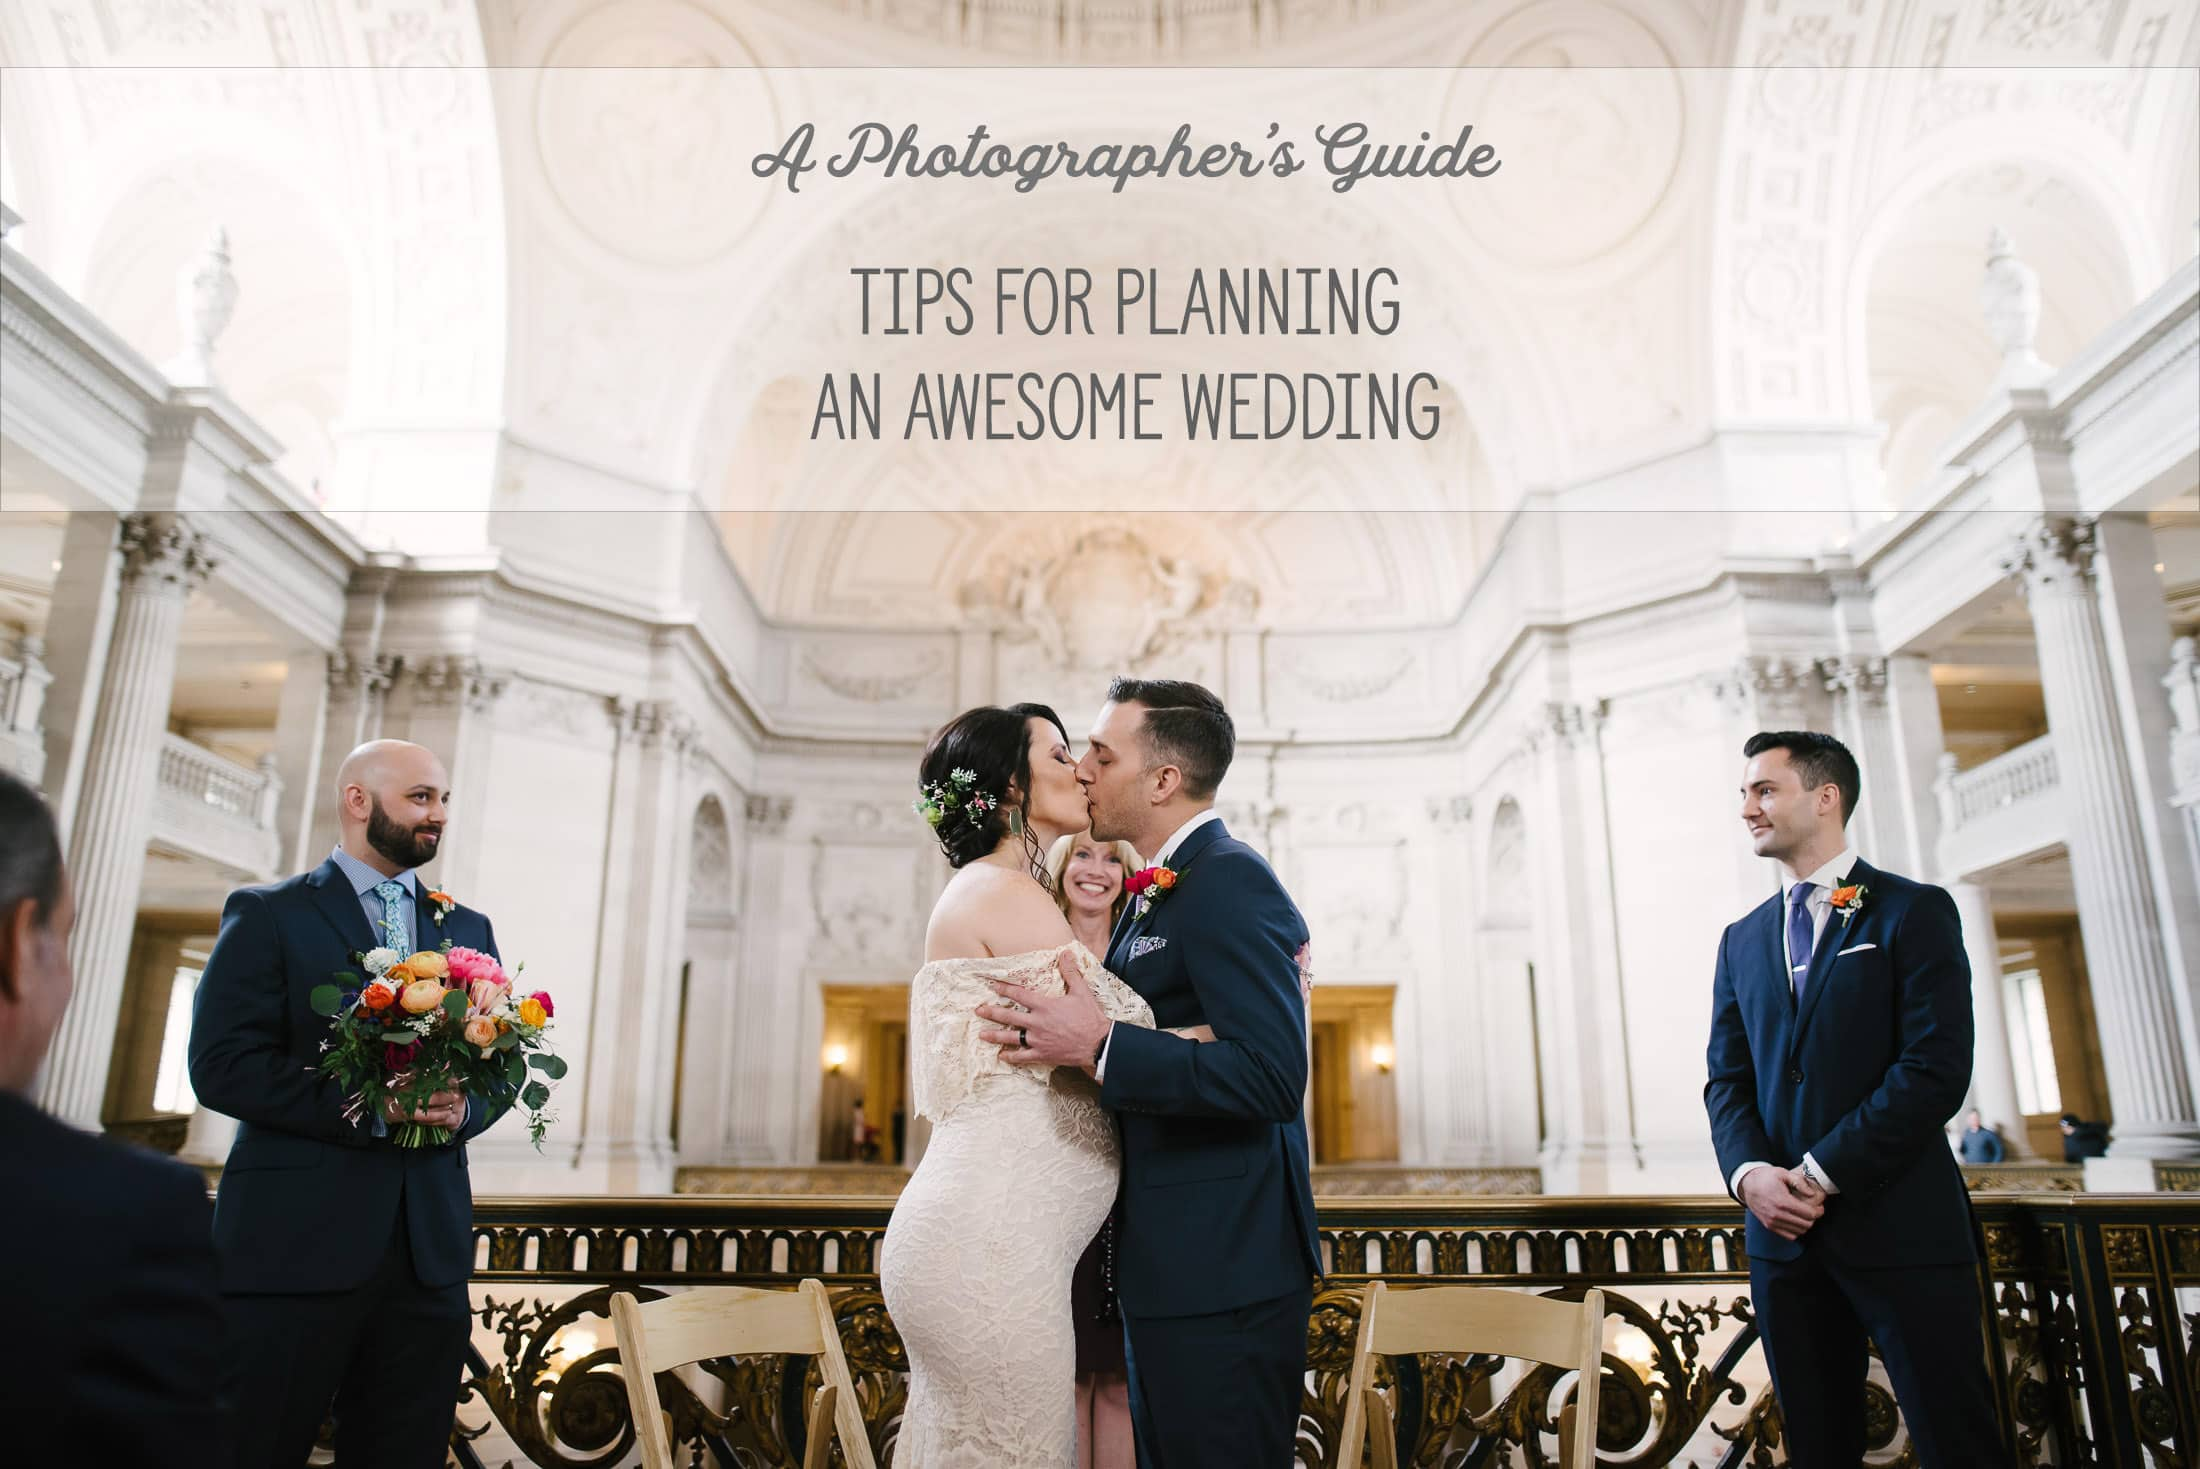 A Photographer's Guide to Planning an Awesome Wedding